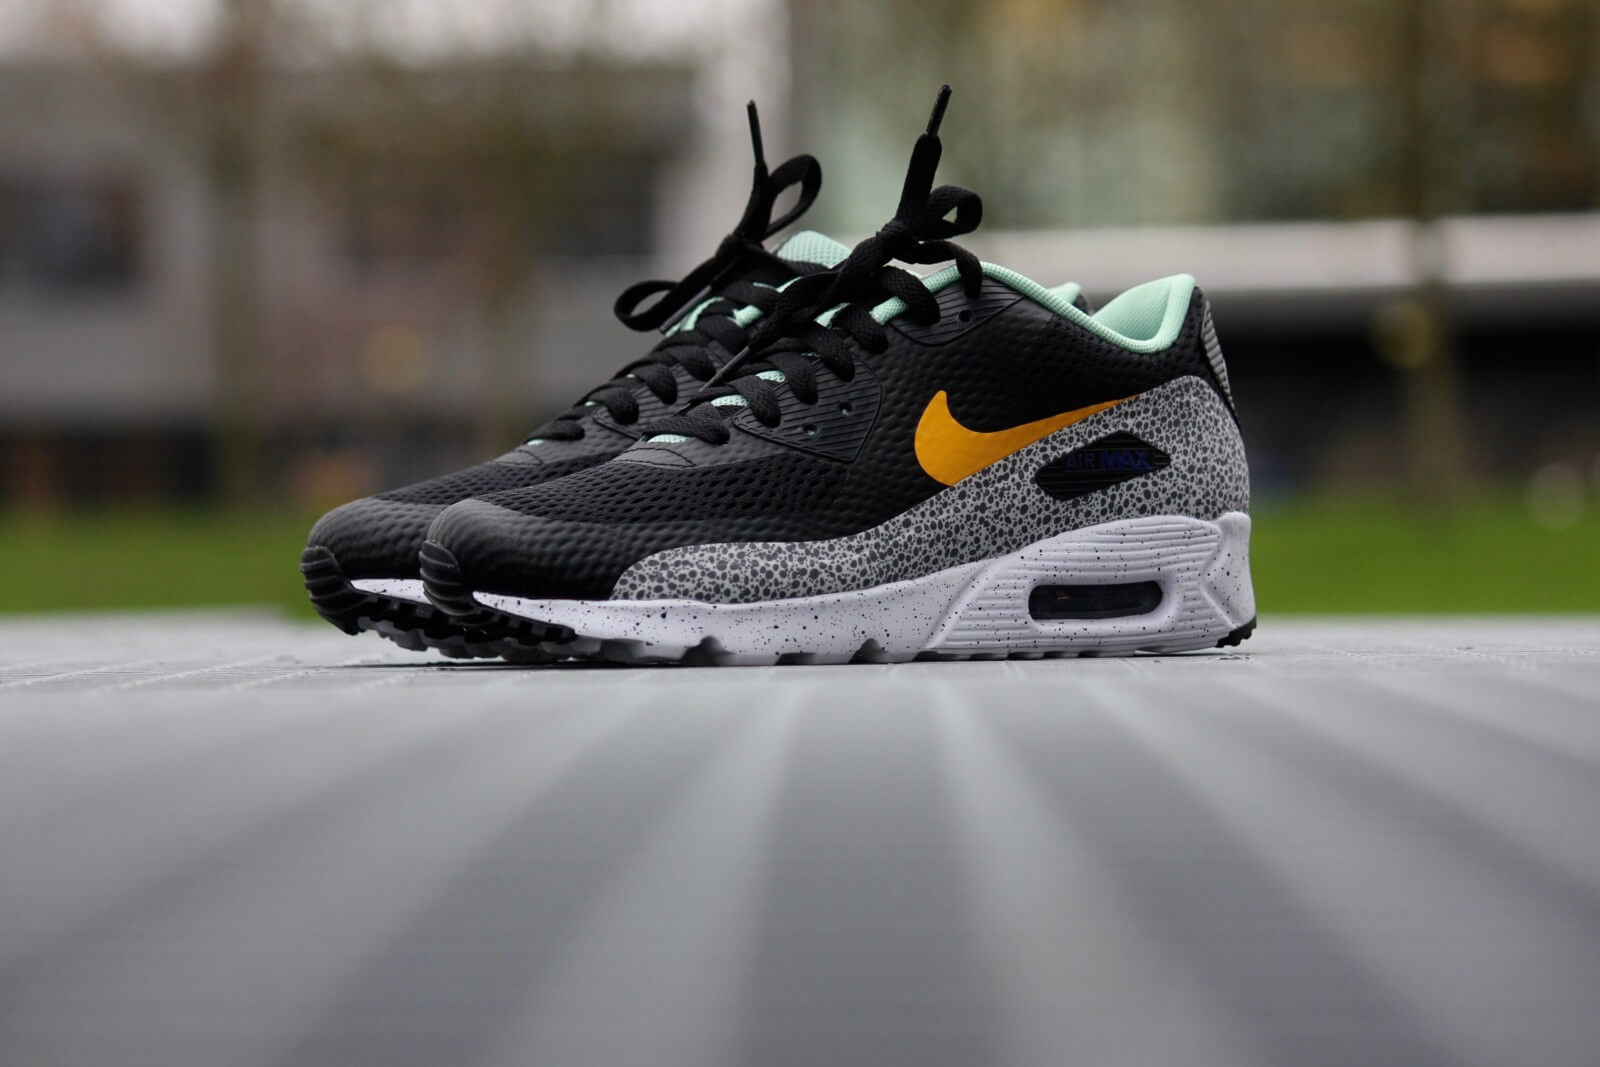 New Nike Air Max 90 Ultra Essential Enamel Green with